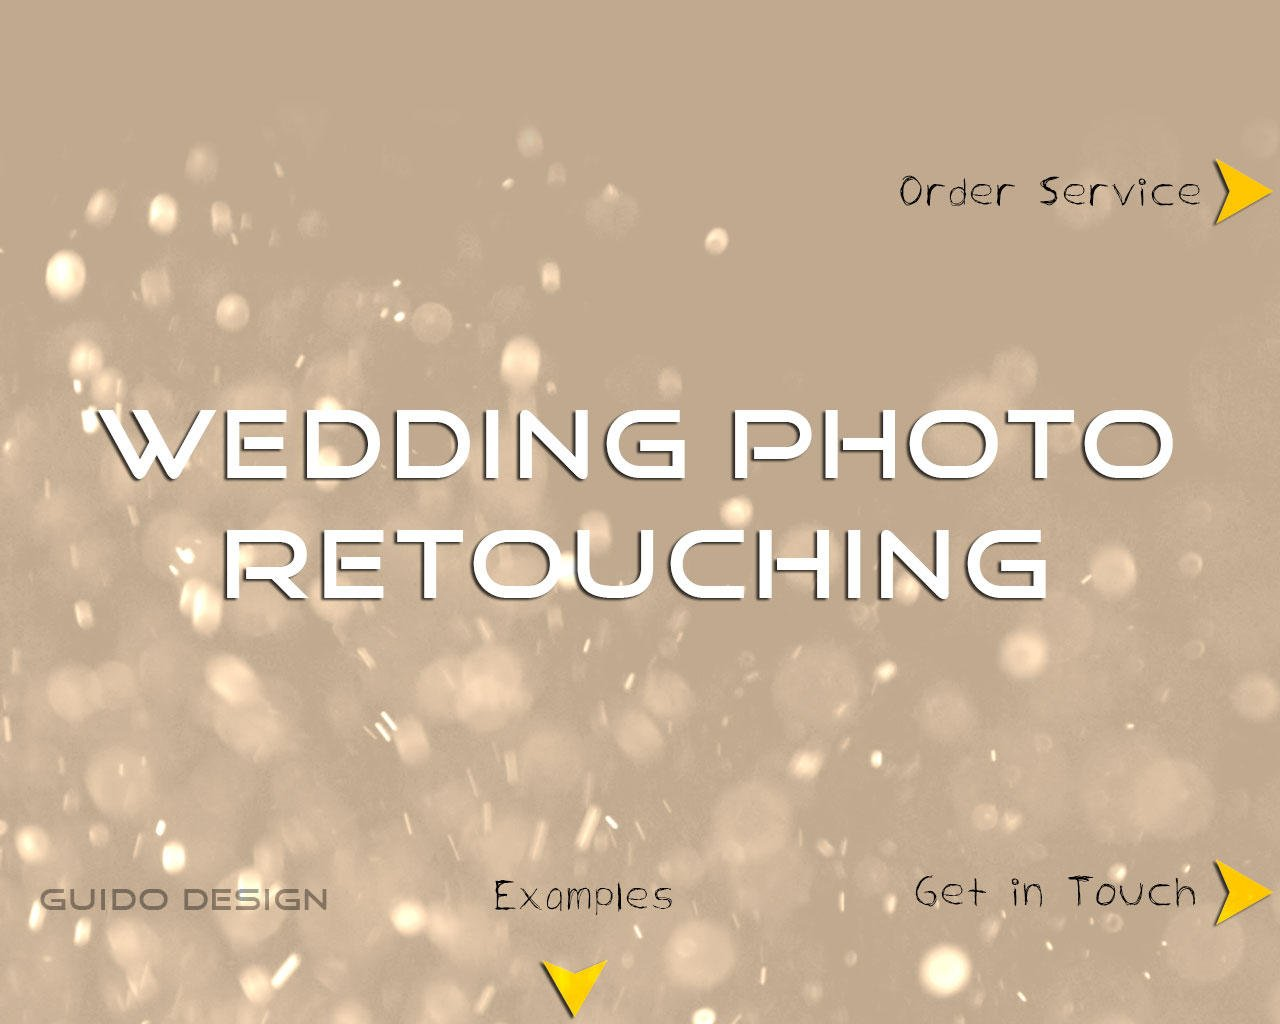 Wedding Photo Retouching by GuidoDesign - 66275